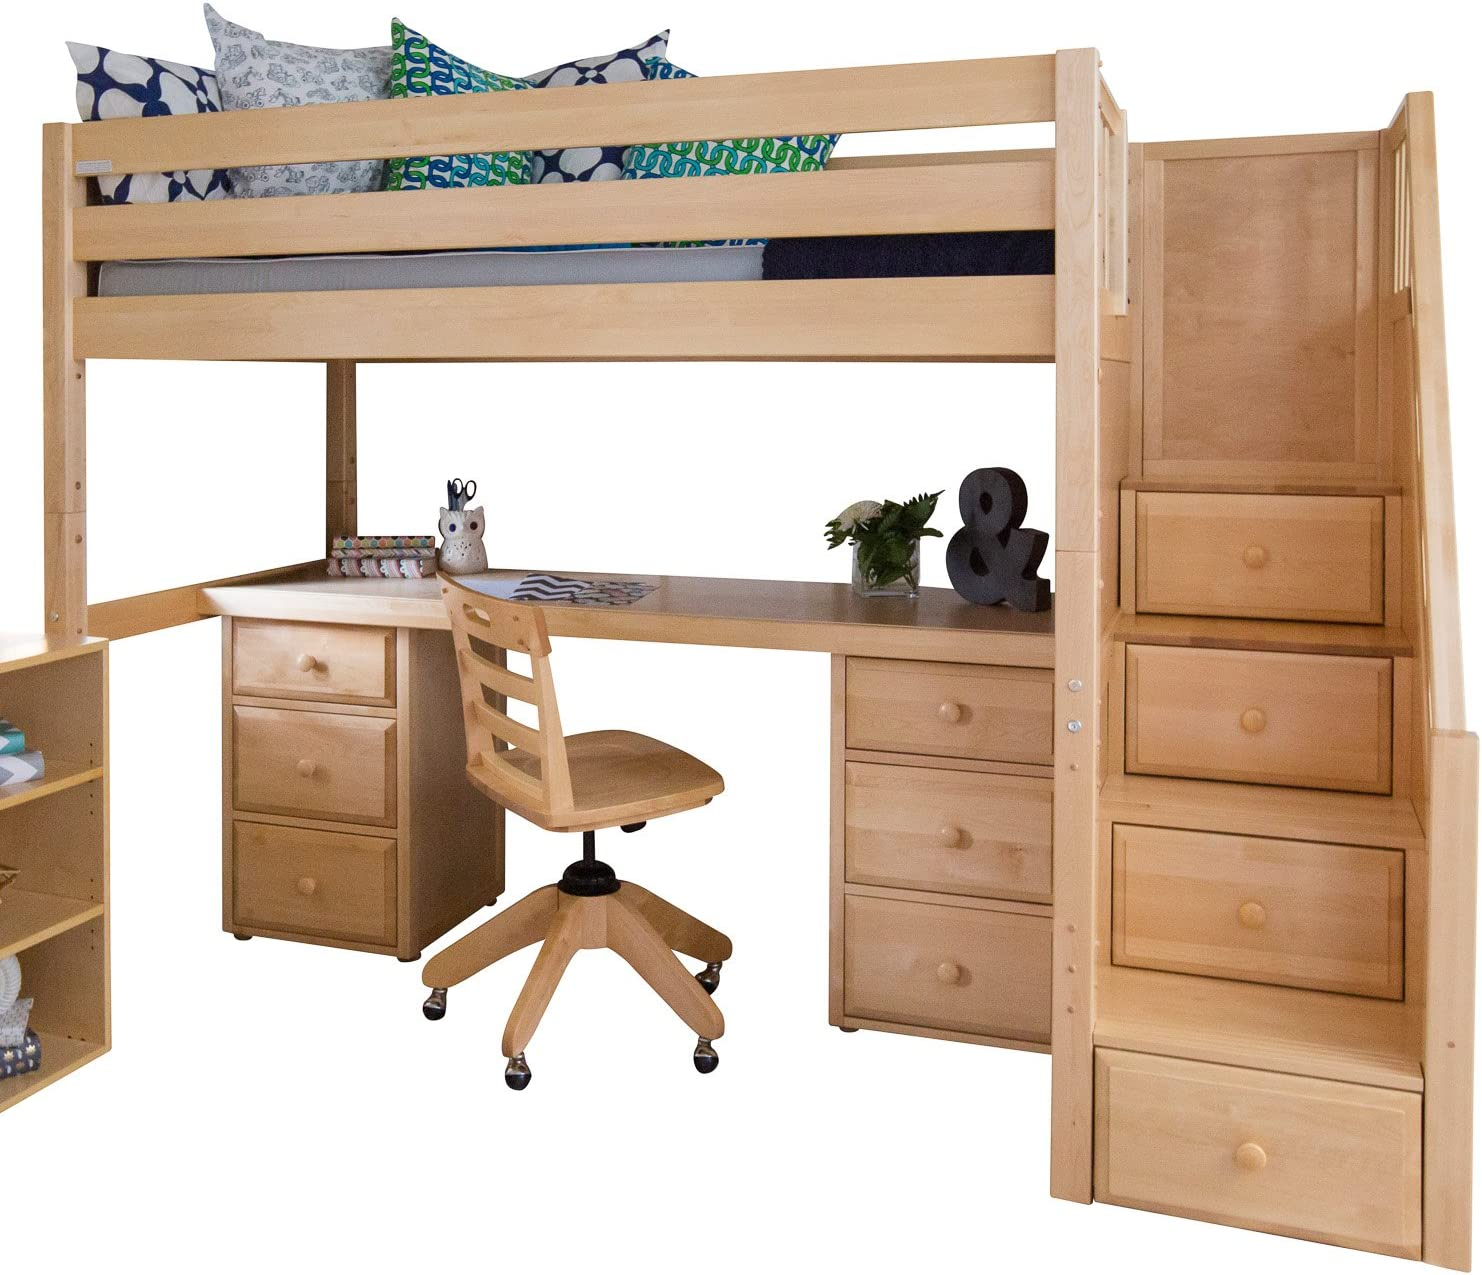 Maxtrix Solid Hardwood Twin Size Low Loft Bed With Storage Staircase Entry Integrated Desk And 2x 3 1 2 Drawer Dresser Natural Furniture Decor